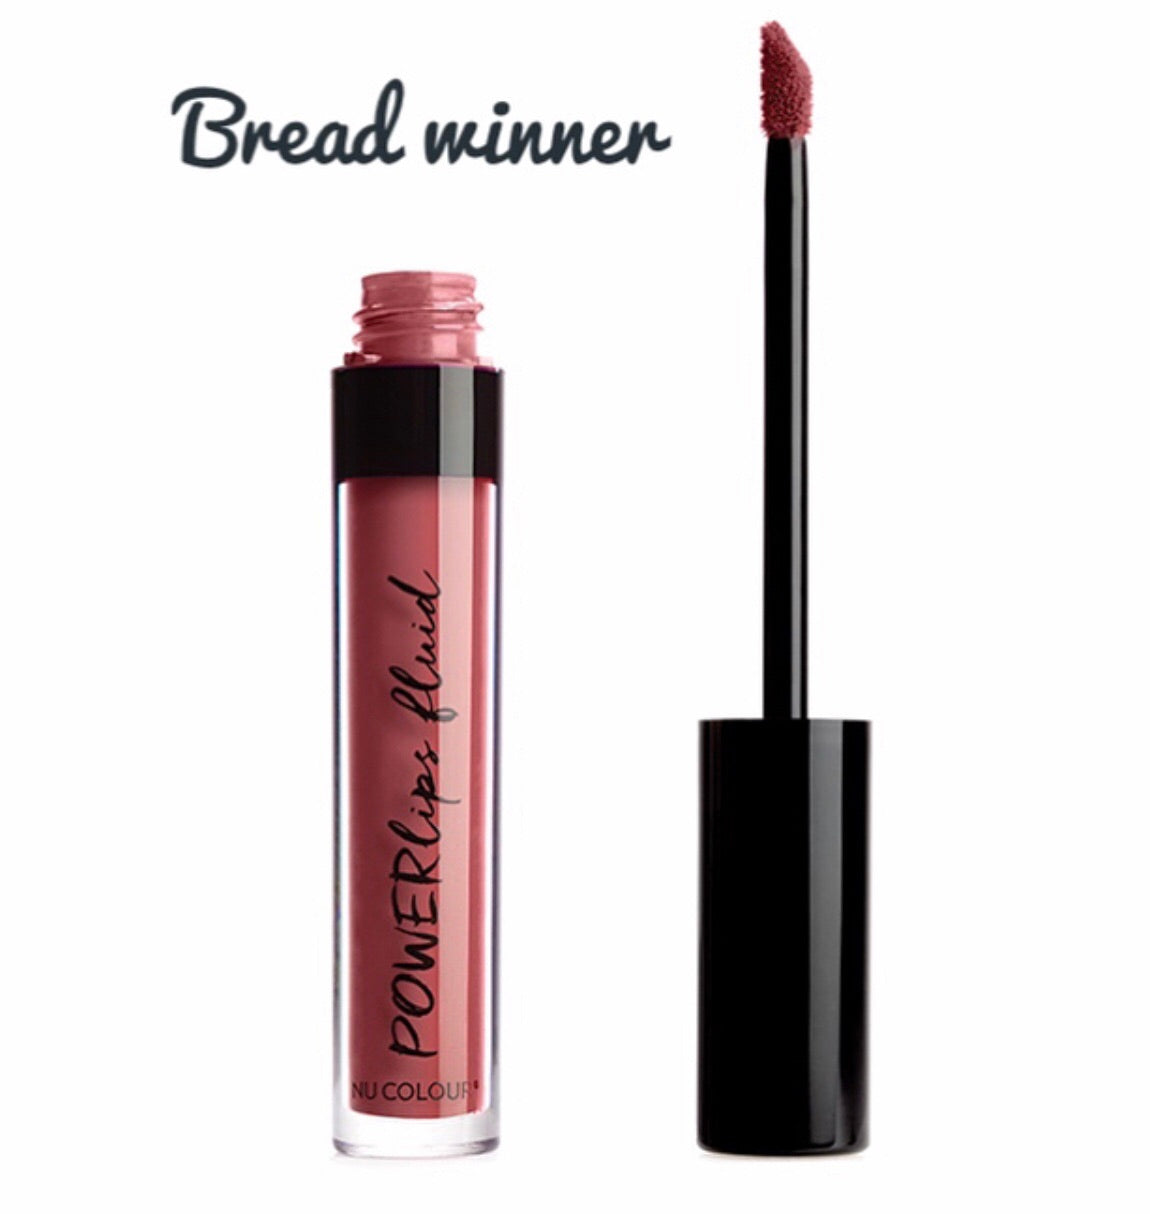 BREADWINNER Powerlip Fluid